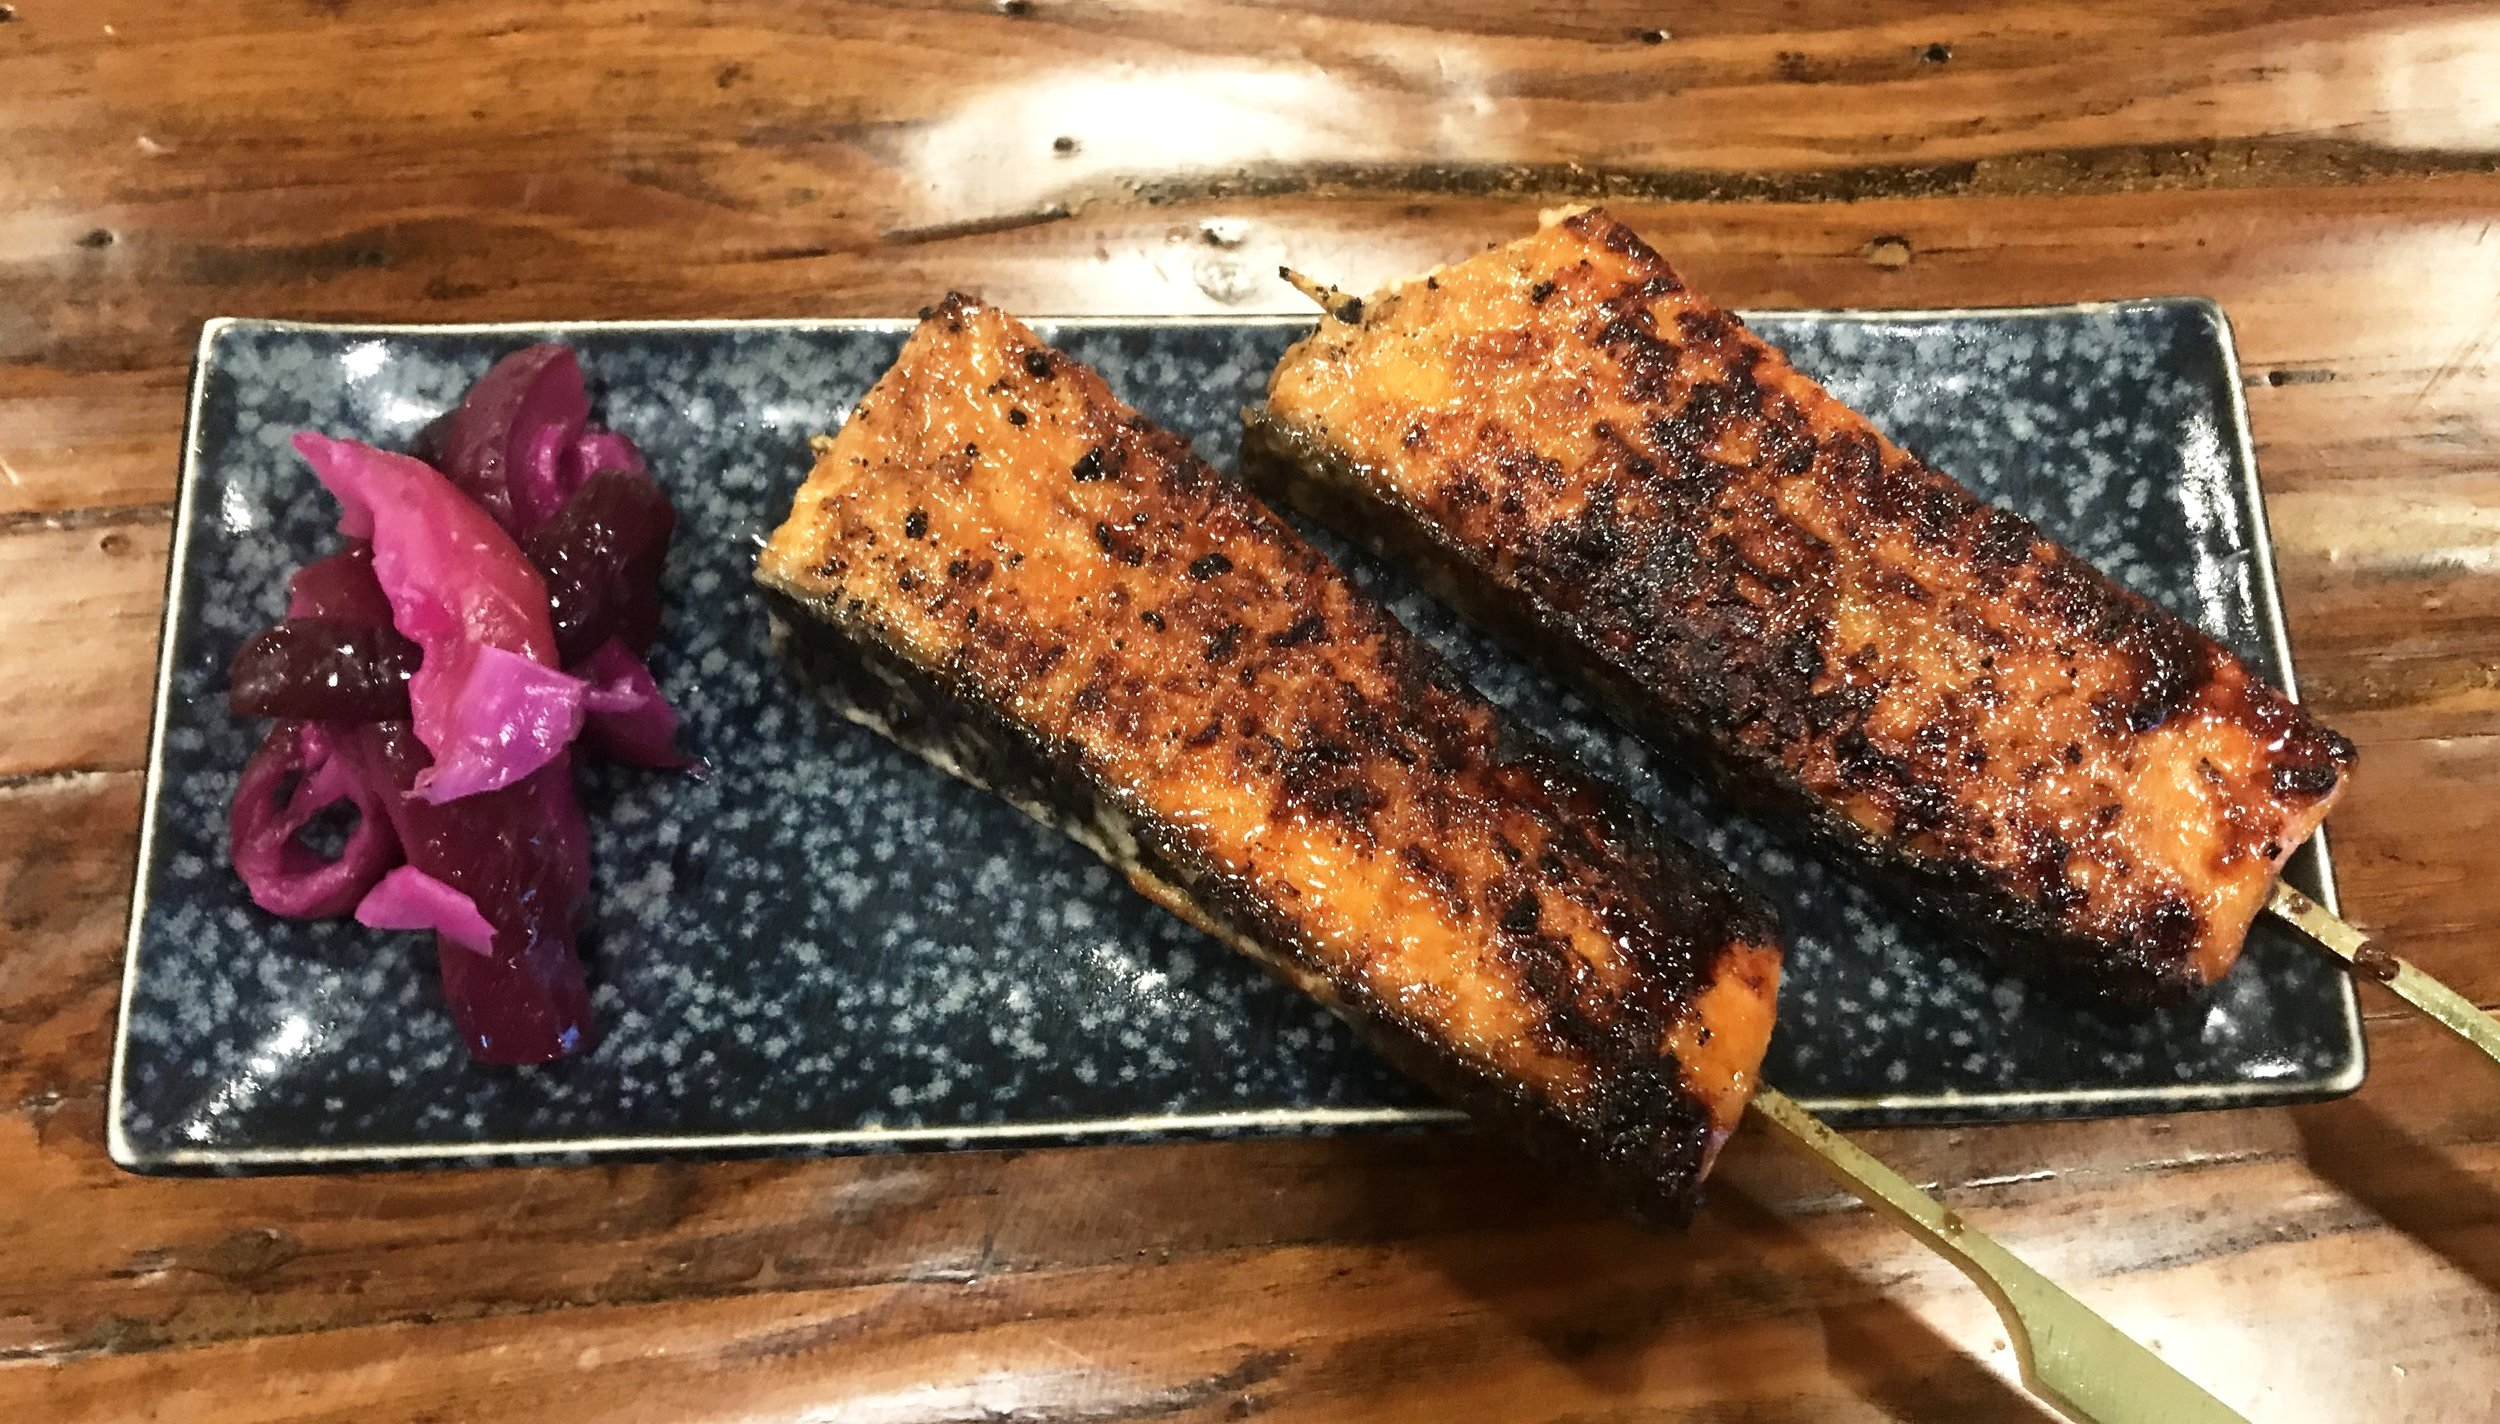 KING SALMON YAKITORI - PRO TIP: FUKUMOTO'S SIGNATURE SKEWER IS ONE OF THE MOST DELICIOUS ITEMS ON THE MENU YOU WILL BE CRAVING FOR WEEKS!